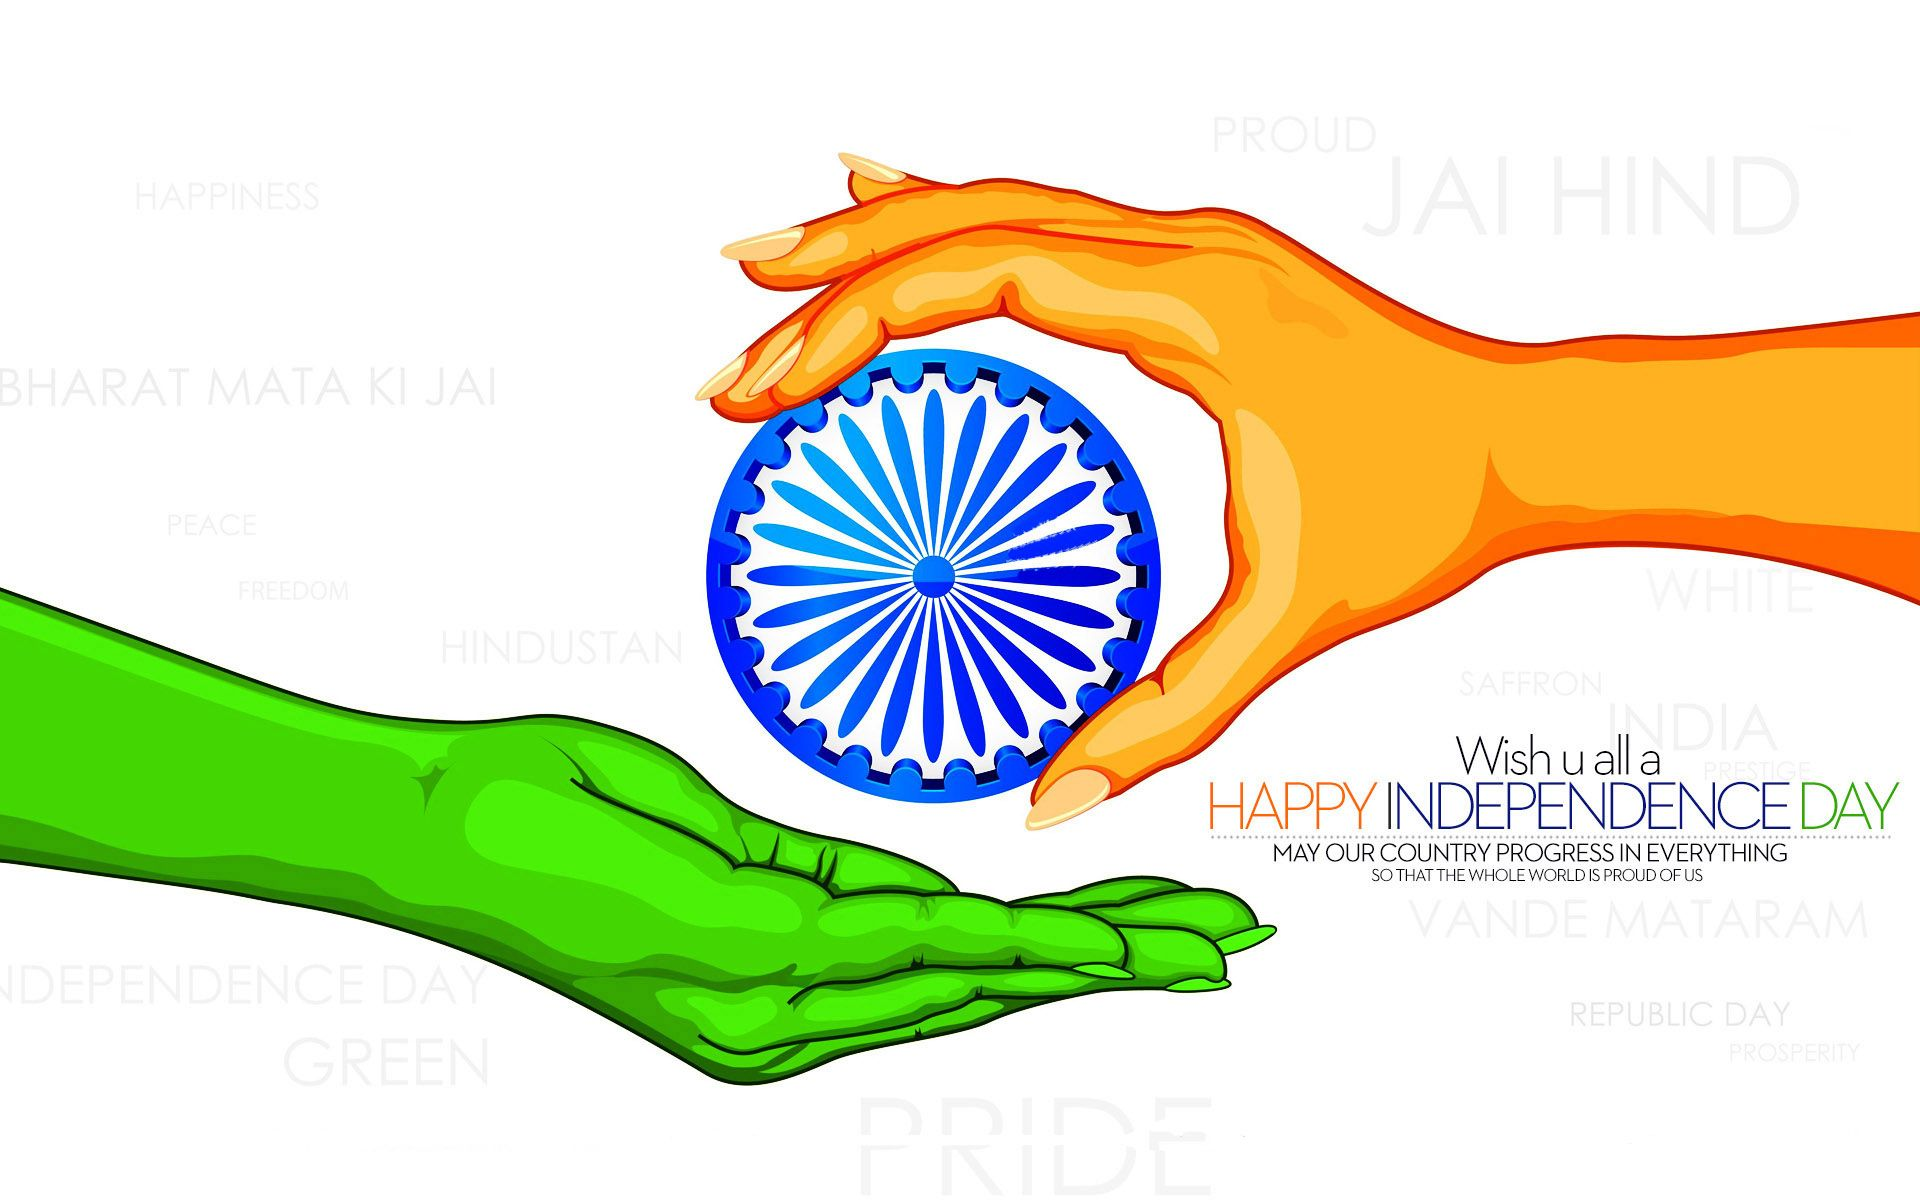 1920x1200 independence day hd wallpaper download august independence